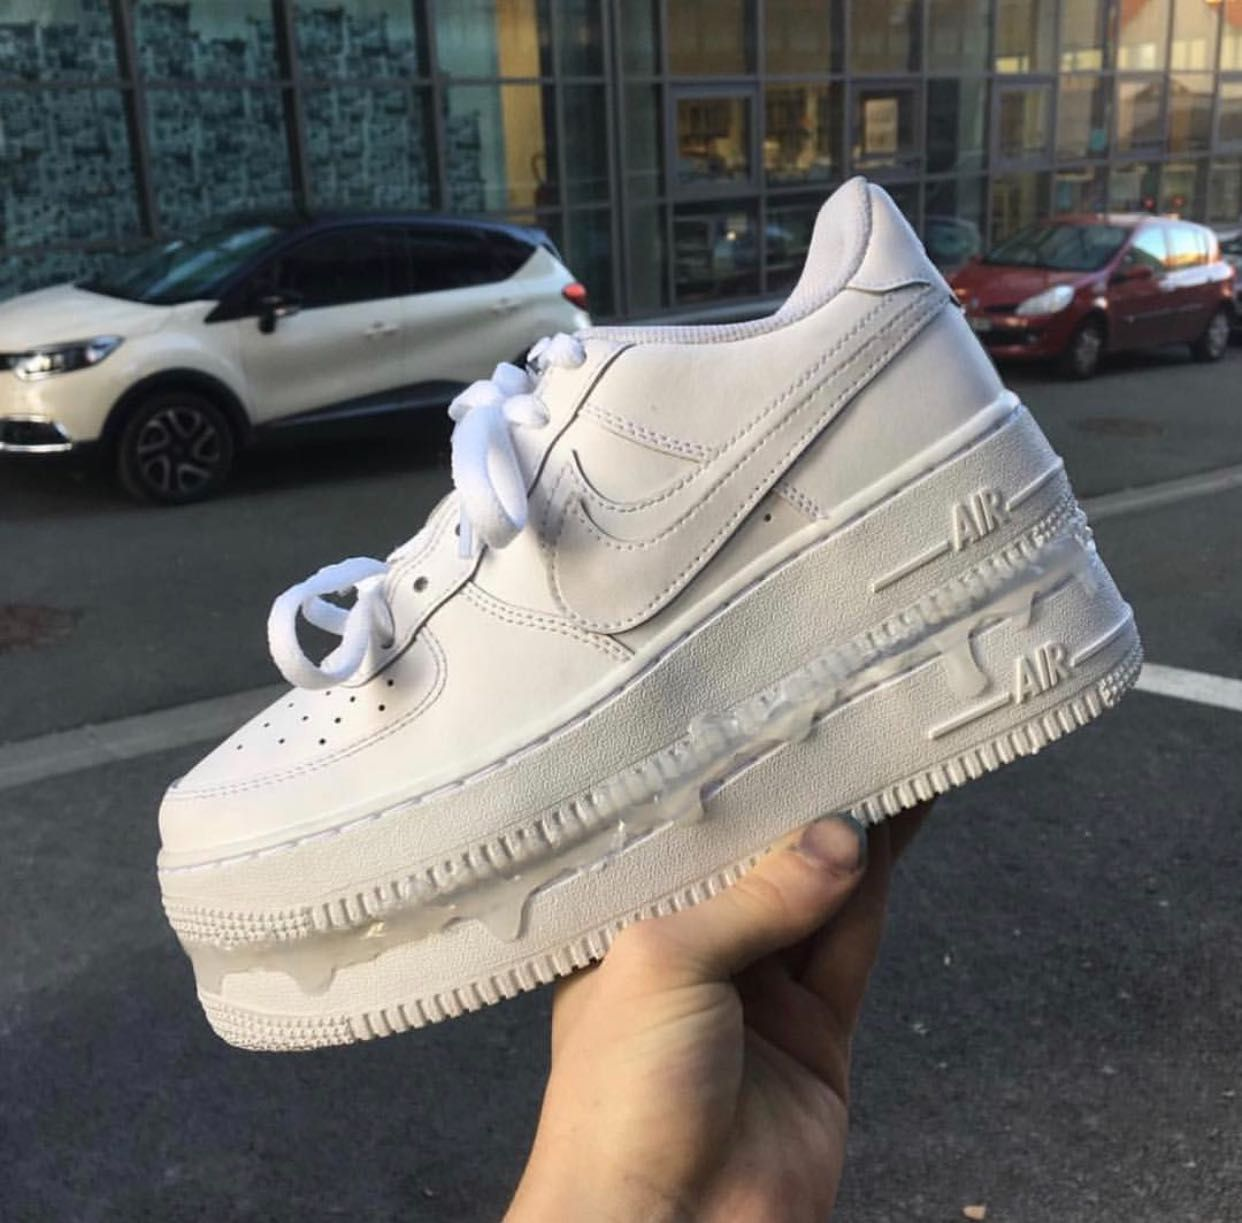 Nike Air Force 1 high tops. really clean with signs Depop